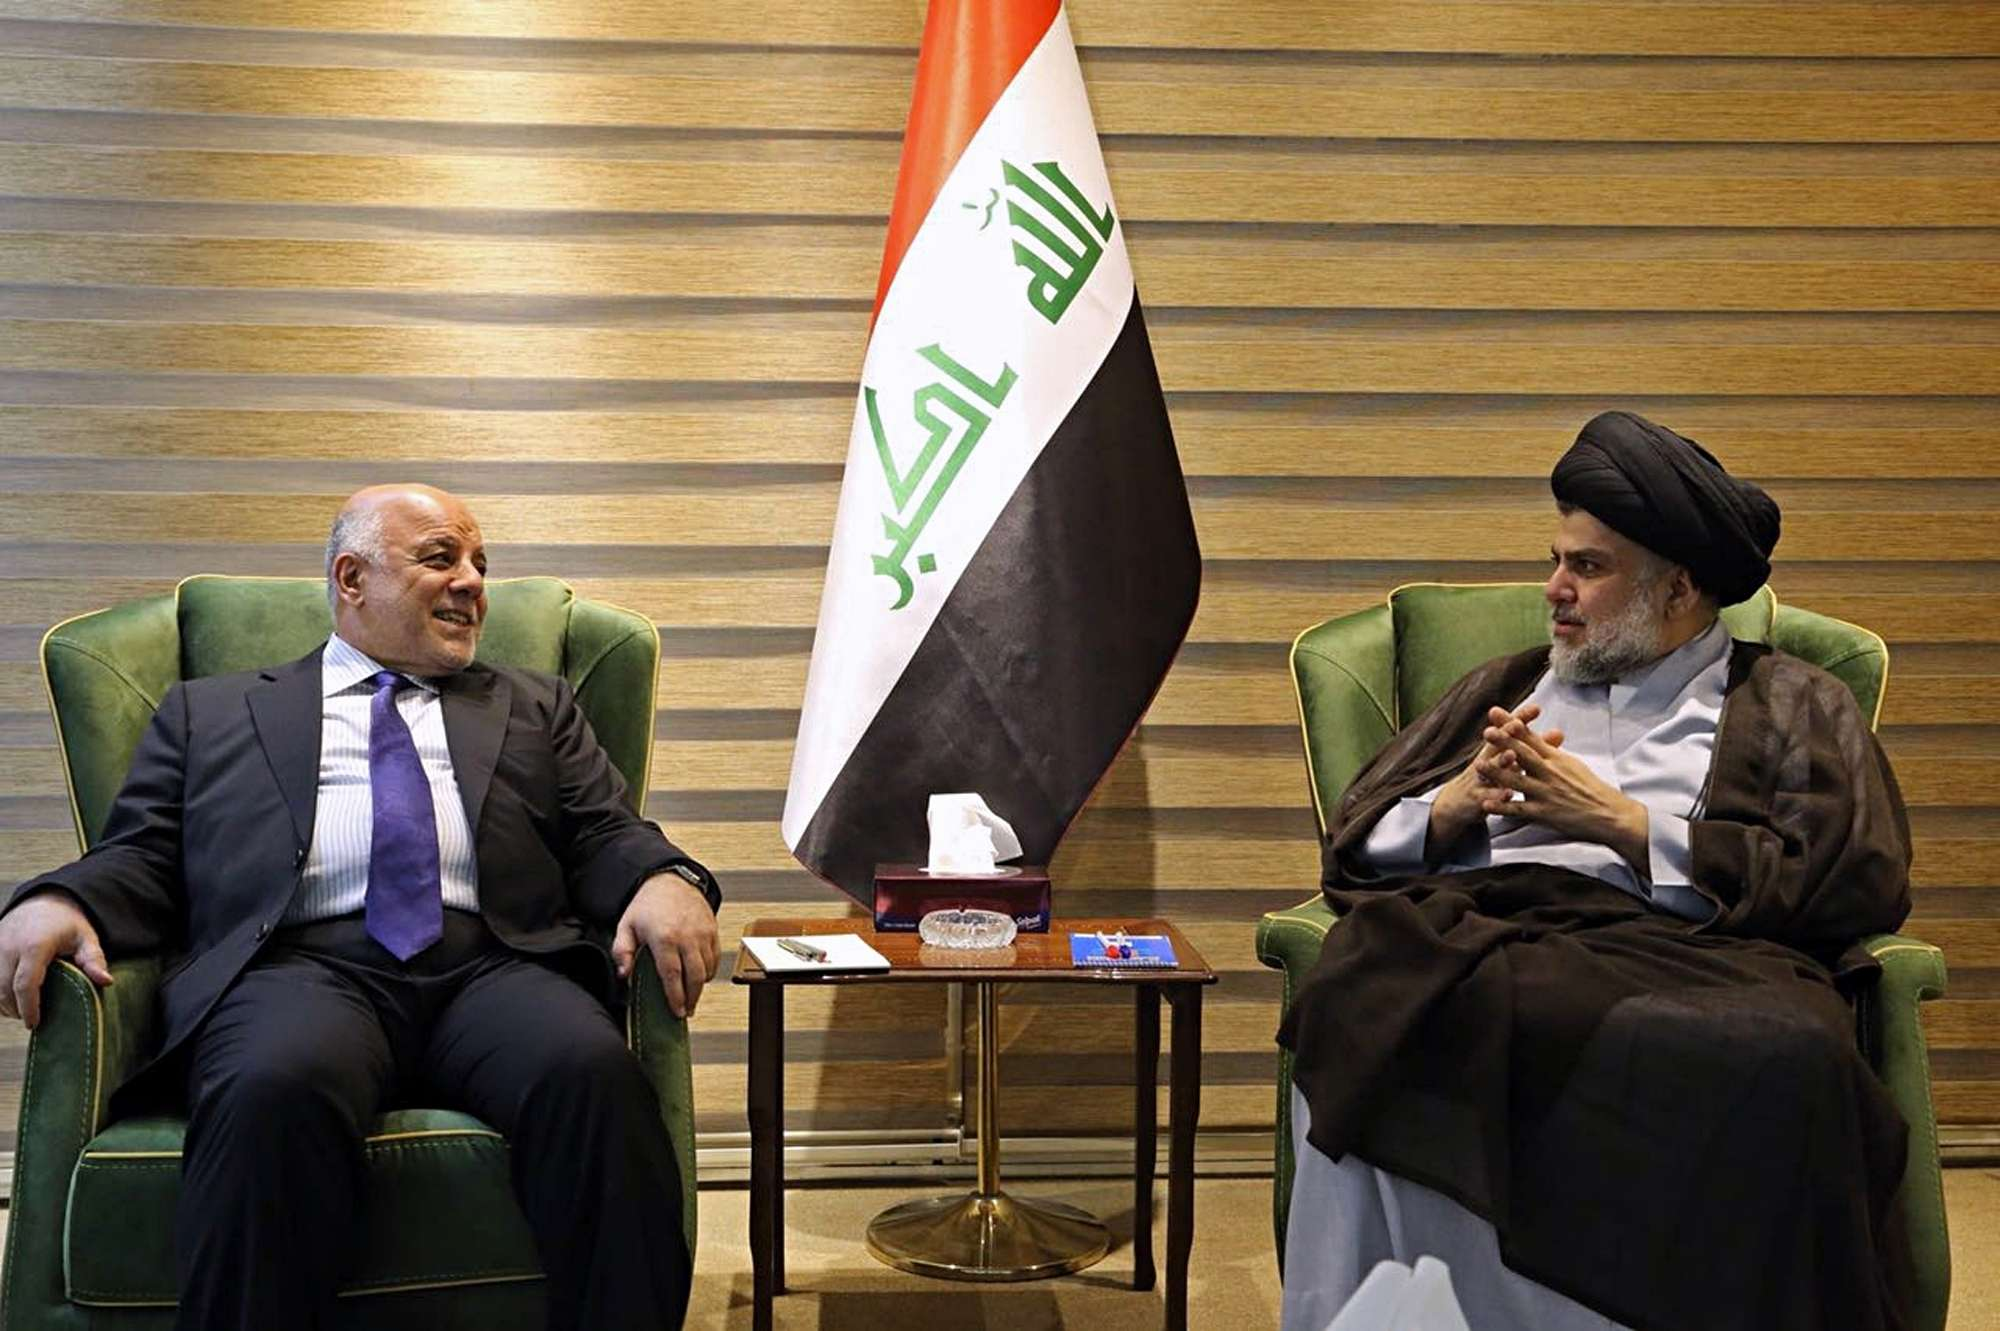 Iraqi Prime Minister Haider al-Abadi (L) meets with Shia cleric Muqtada al-Sadr in the heavily fortified Green Zone in Baghdad, on May 20. (Iraqi Government)